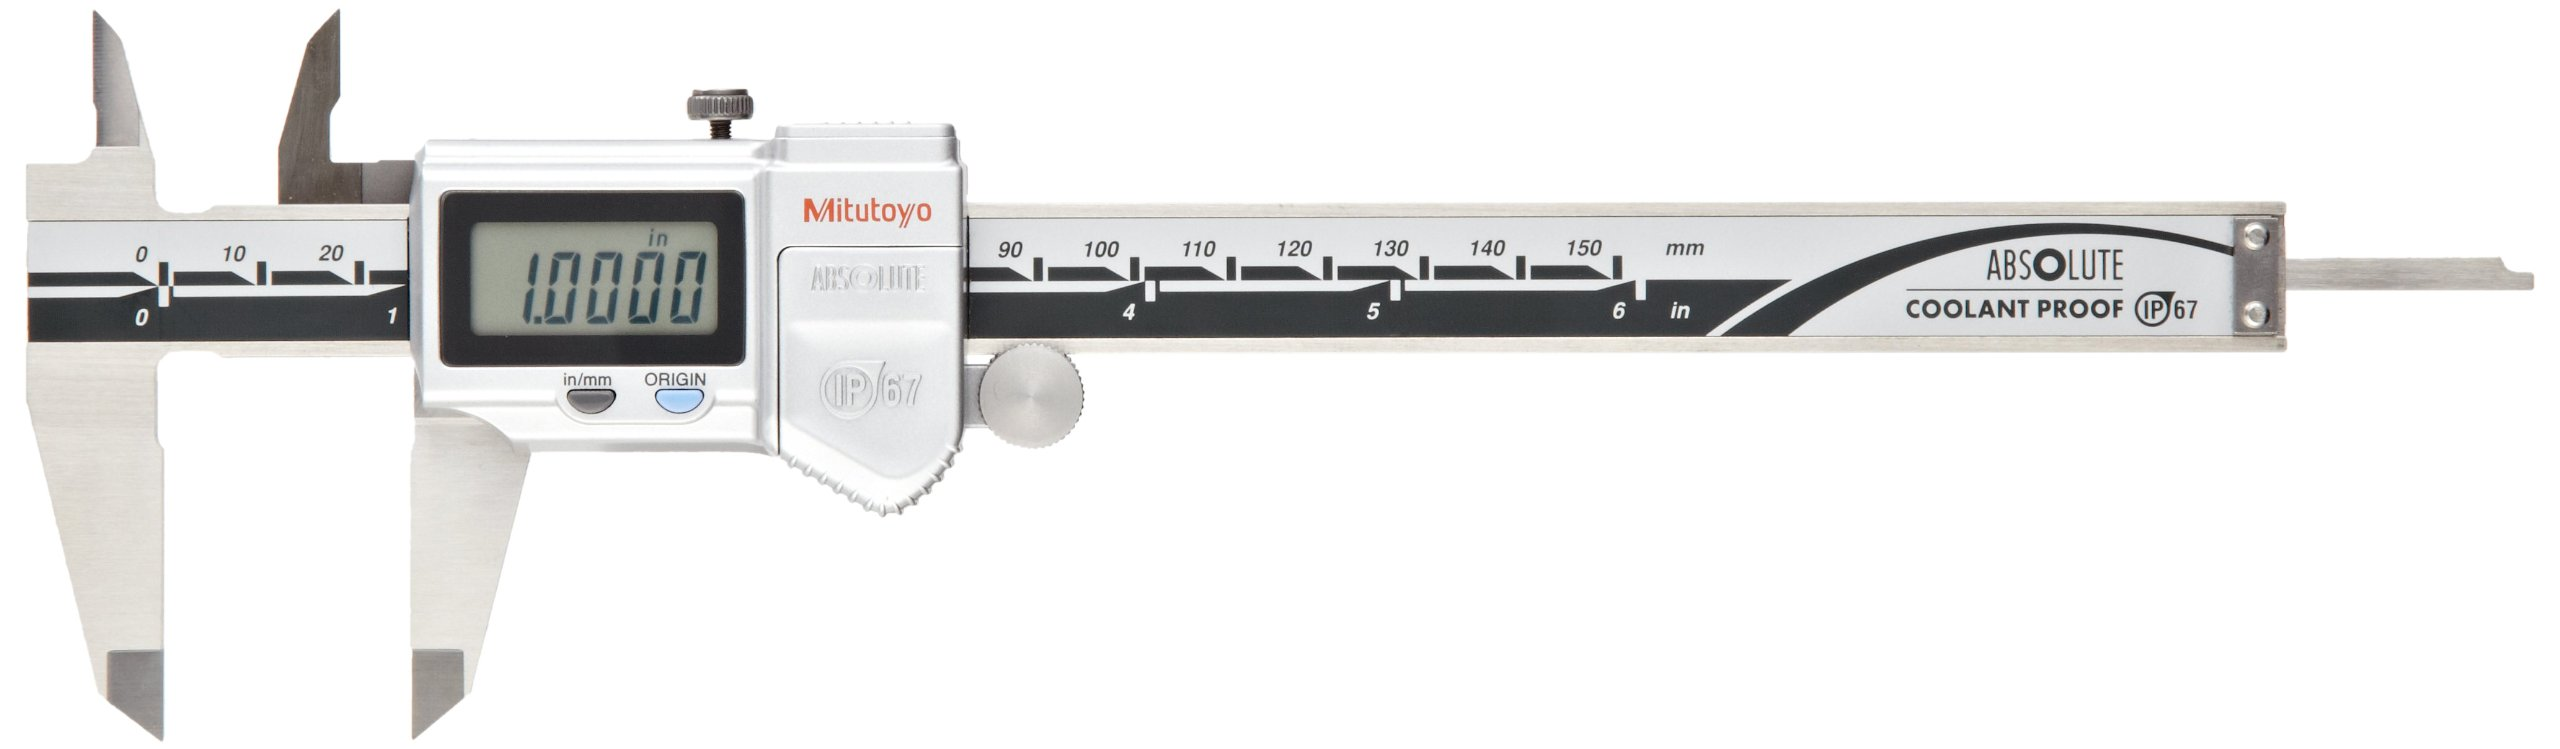 Mitutoyo 500-762-10 Digital Calipers, Battery Powered, Inch/Metric, for Inside, Outside, Depth and Step Measurements, Stainless Steel, 0''/0mm-6''/150mm Range, +/-0.001''/0.01mm Accuracy, 0.0005''/0.01mm Resolution, Meets IP67 Specifications